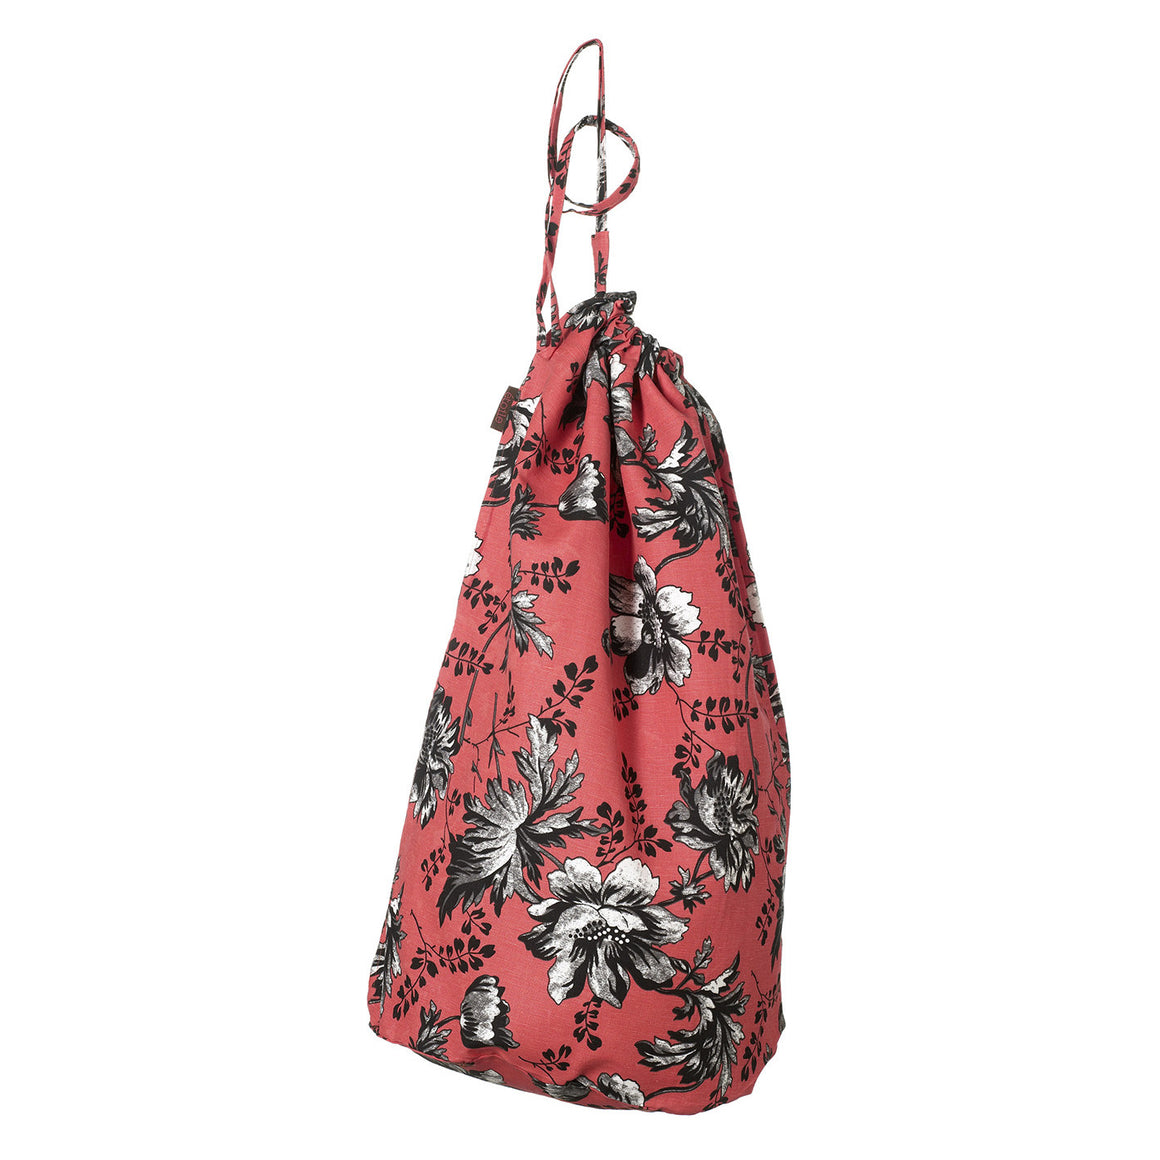 Corsica Floral Cotton Linen Laundry & Storage Bag in Geranium Red